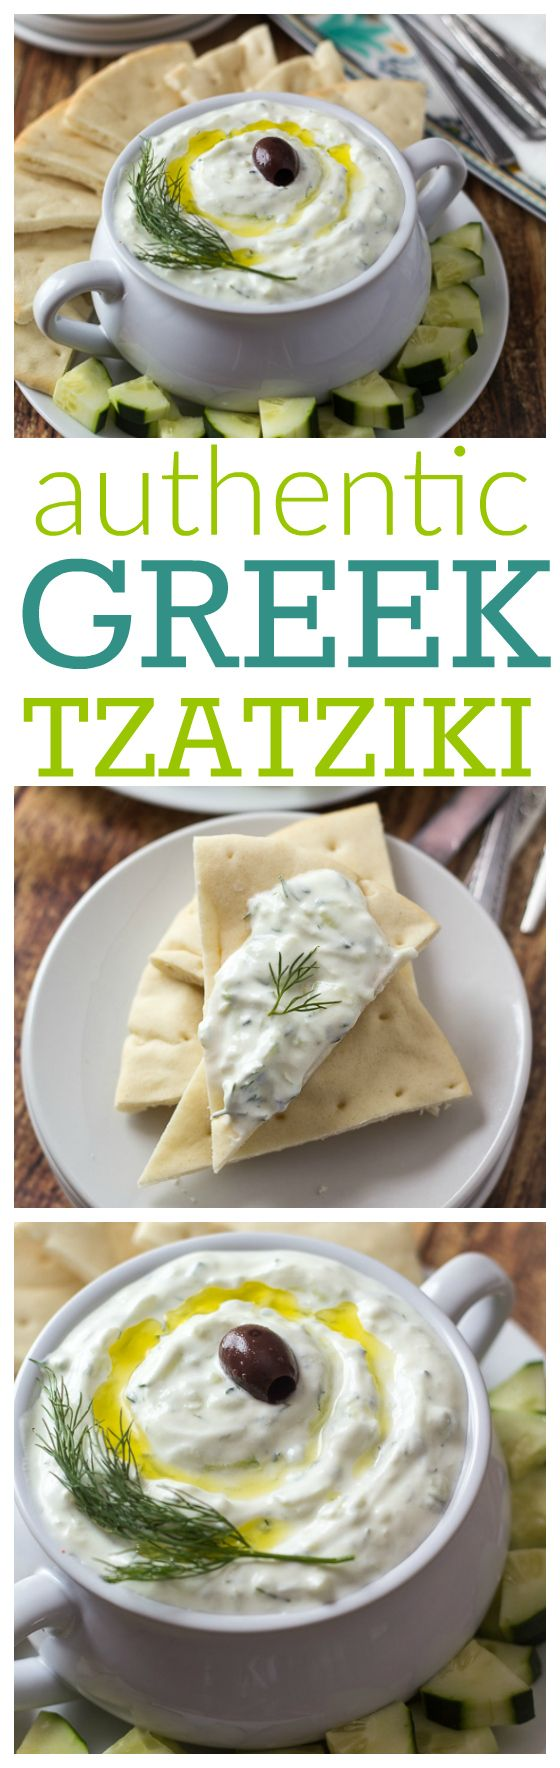 She learned how to make it while visiting Athens – this is the best way to make REAL authentic Greek tzatz